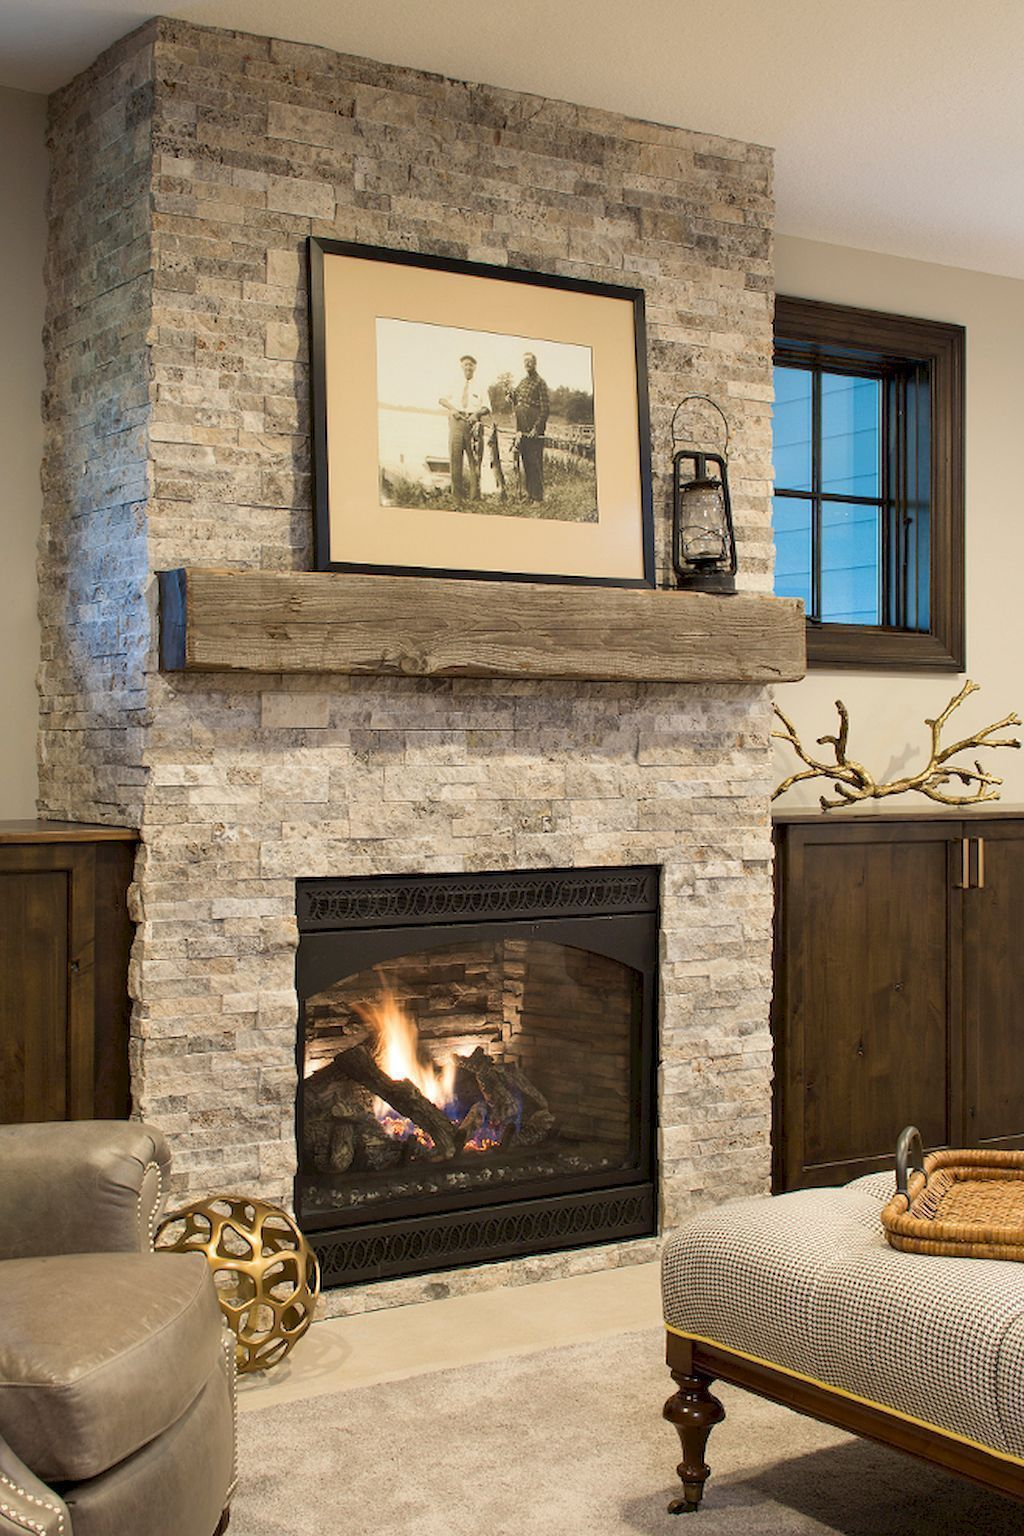 Tv In Corner Of Room Design: 80 Incridible Rustic Farmhouse Fireplace Ideas Makeover